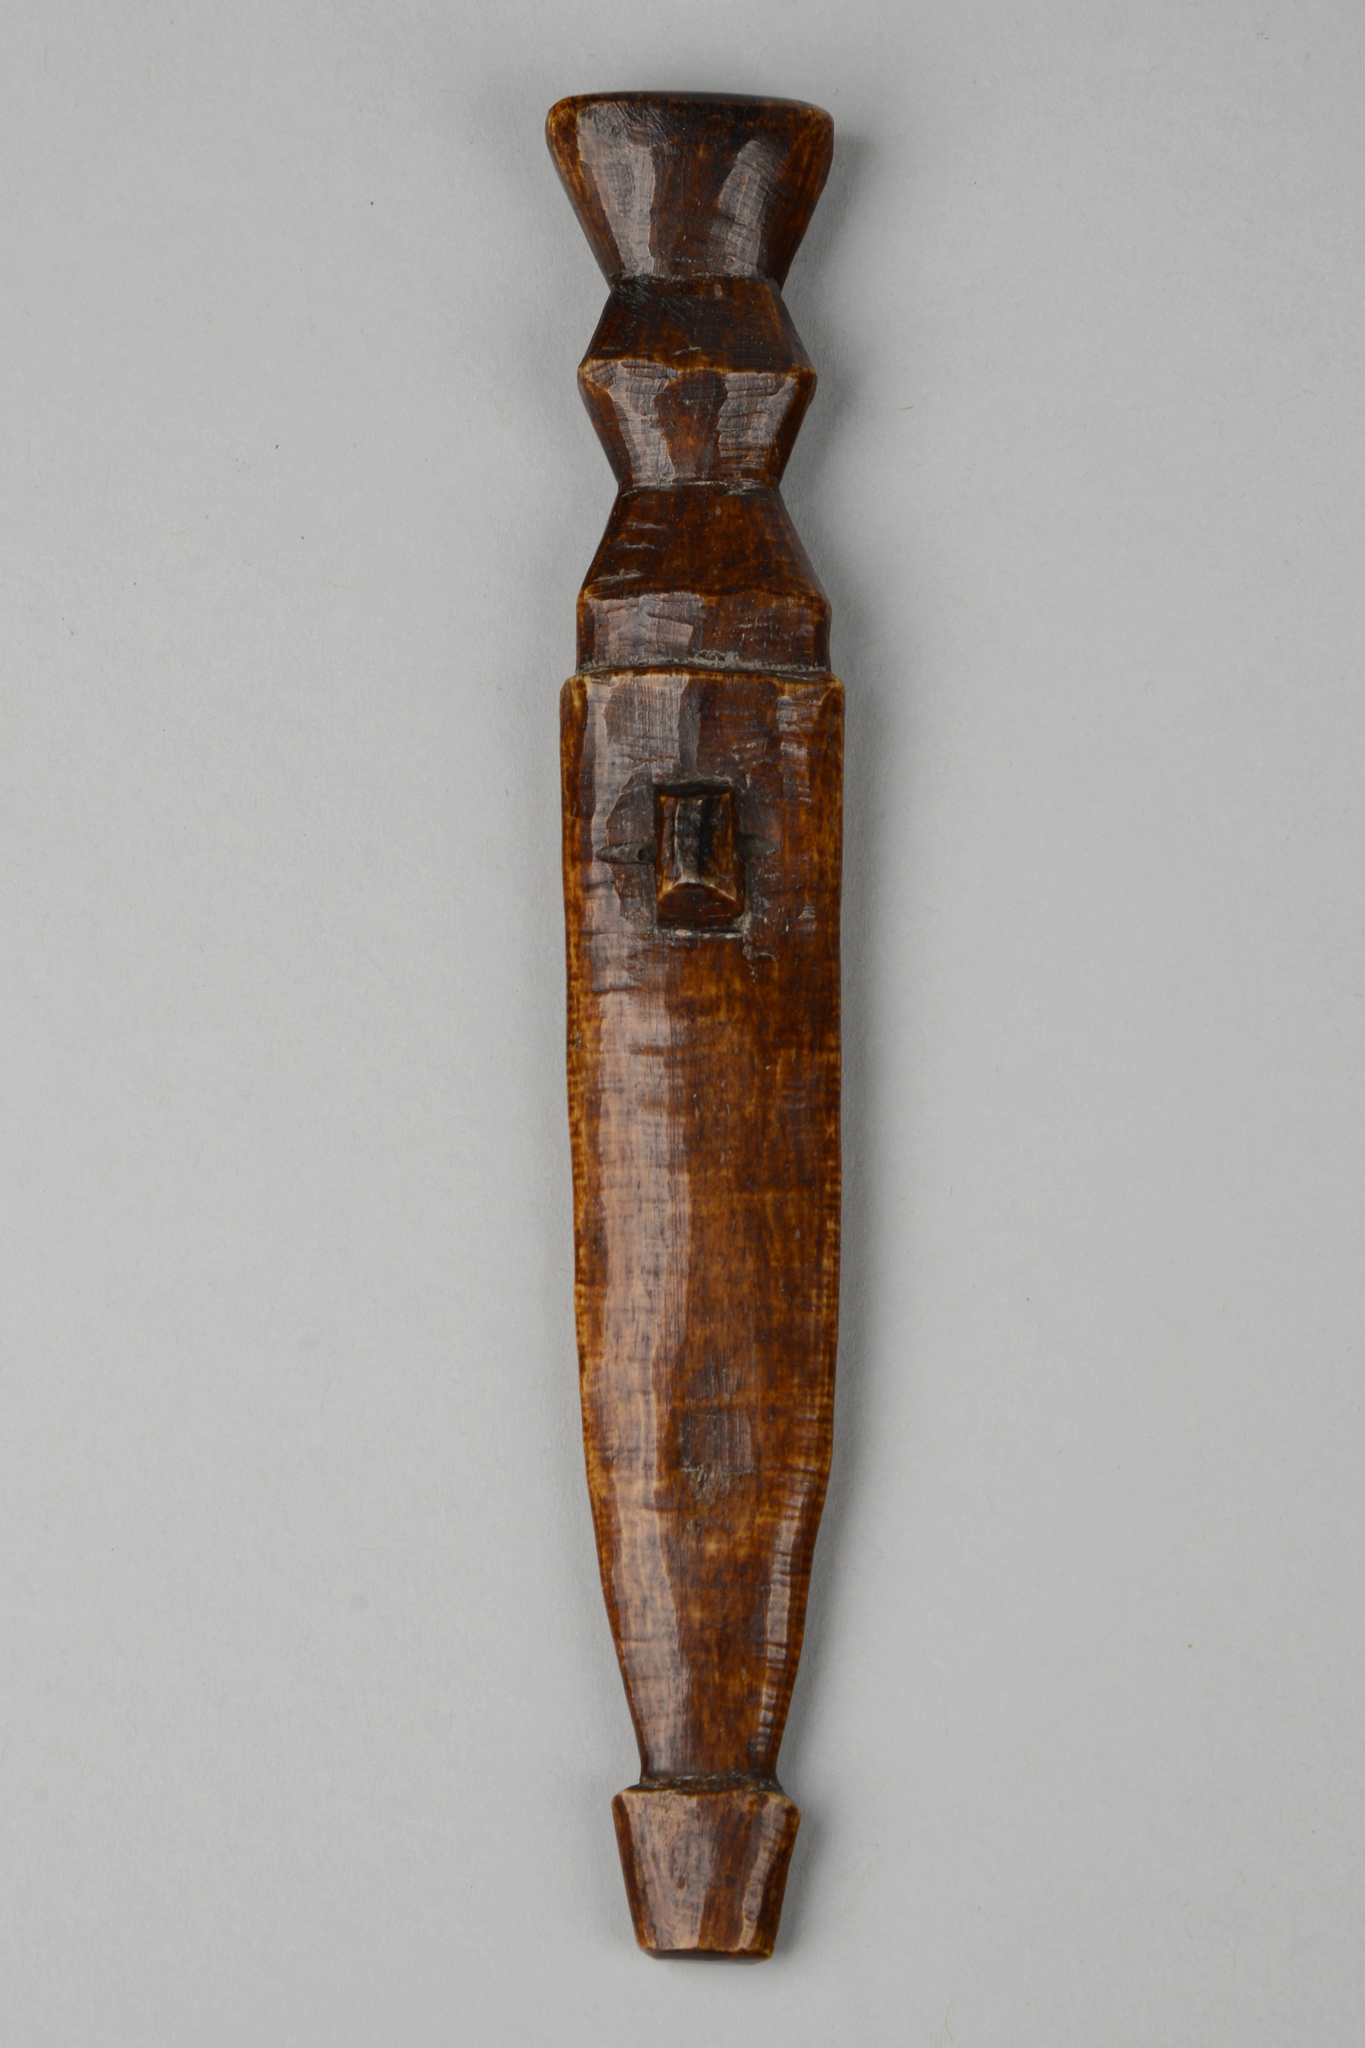 Ritual object in shape of a knife